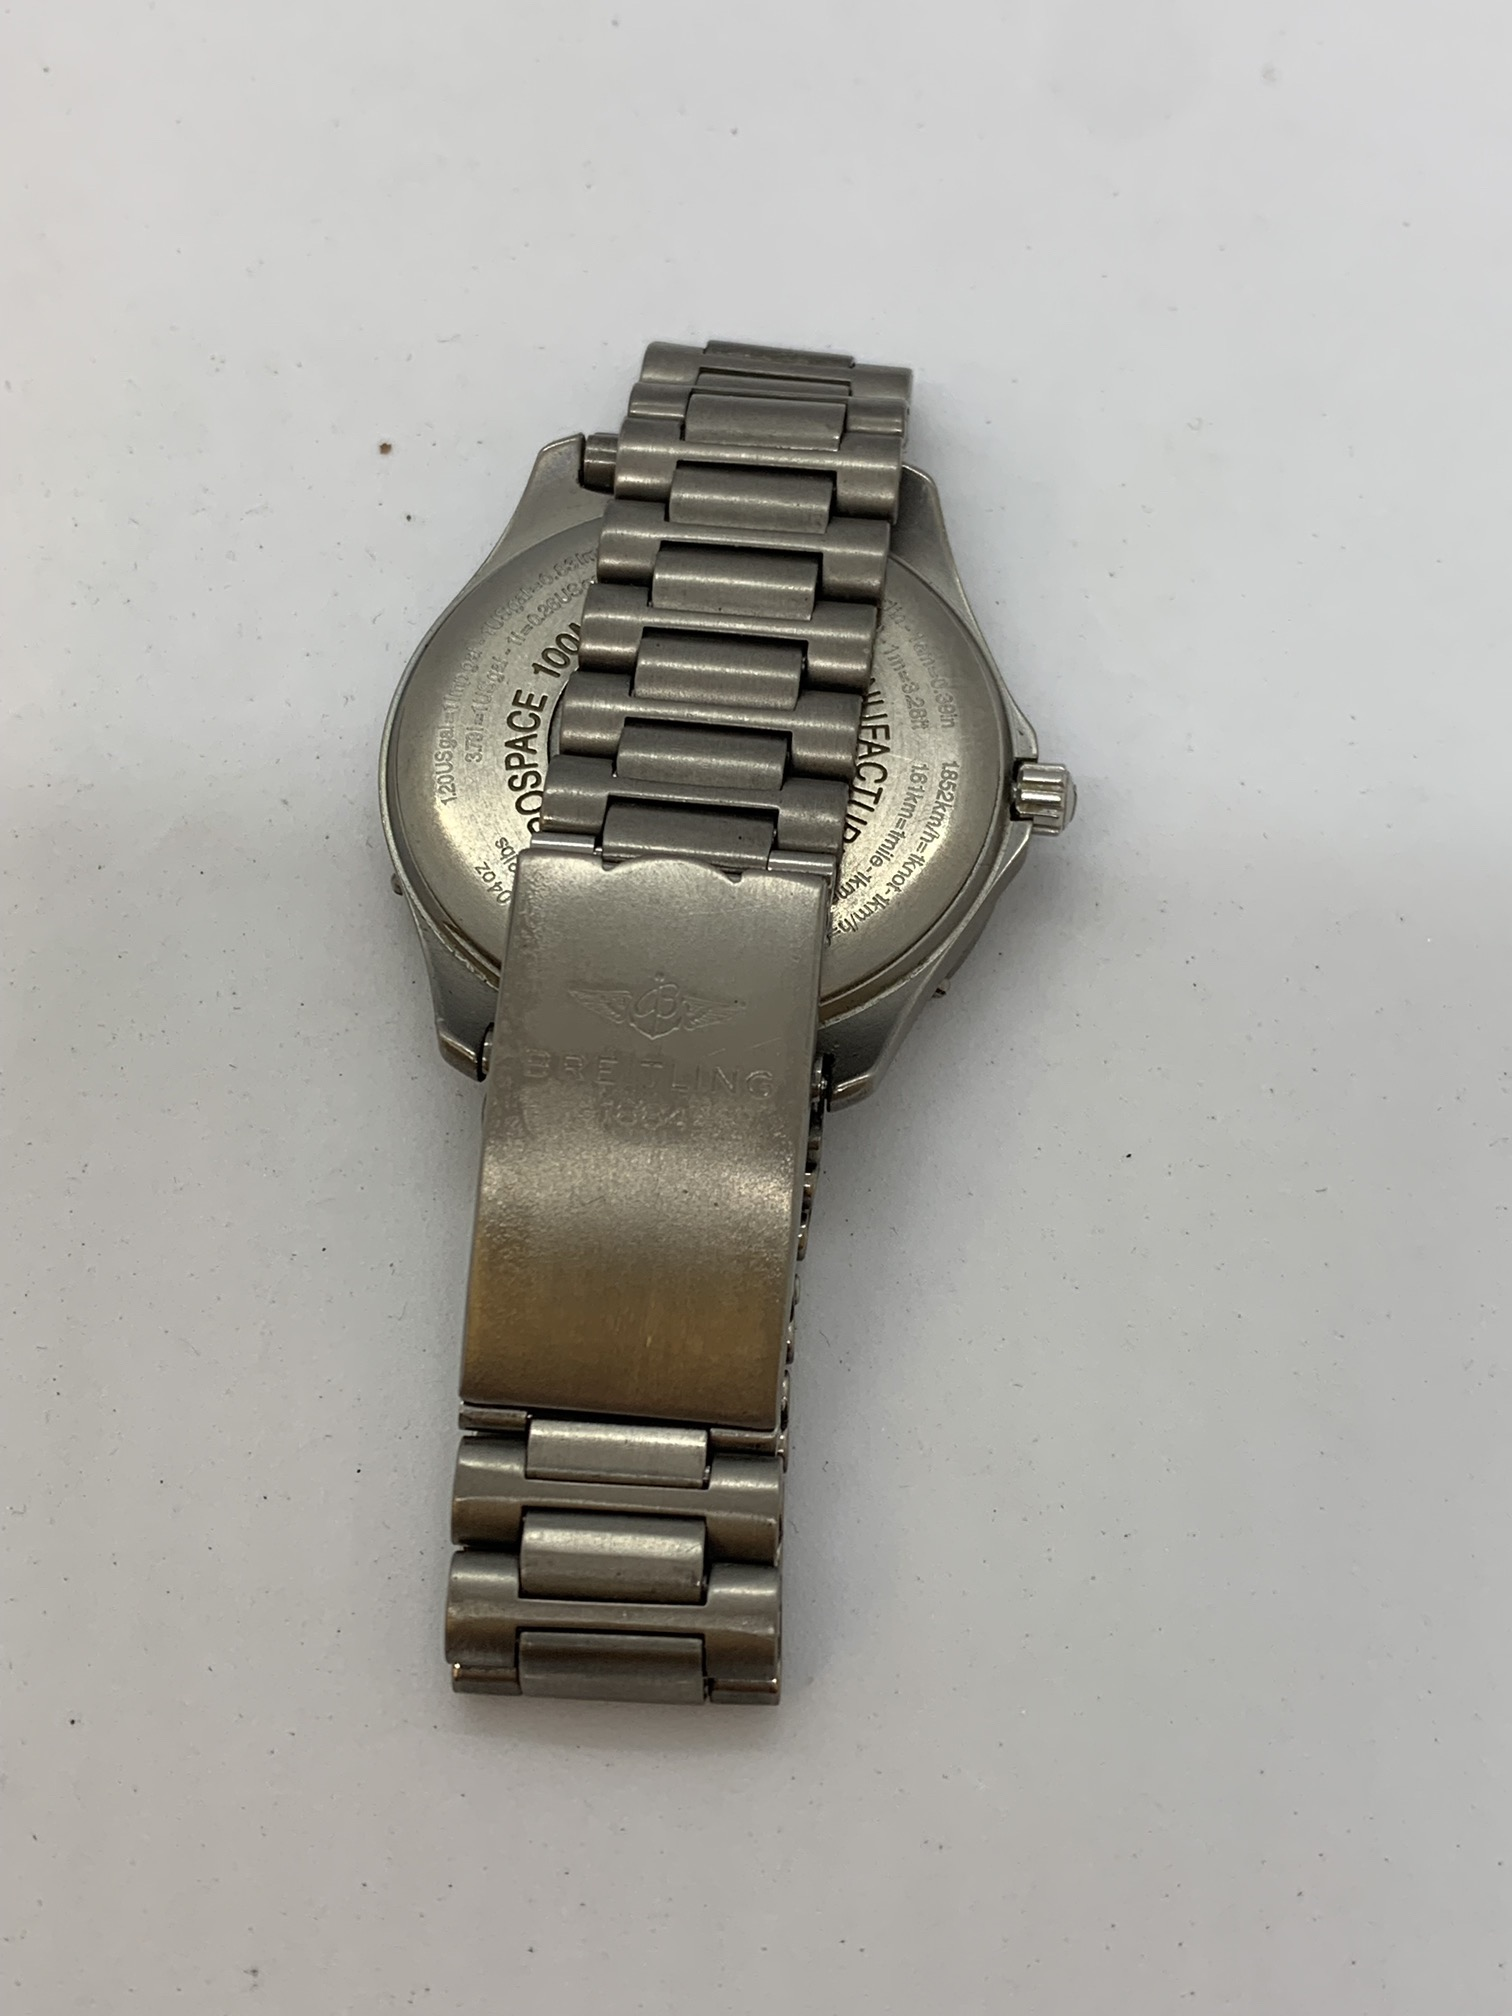 BREITLING TITANIUM WATCH A/F - Image 12 of 15